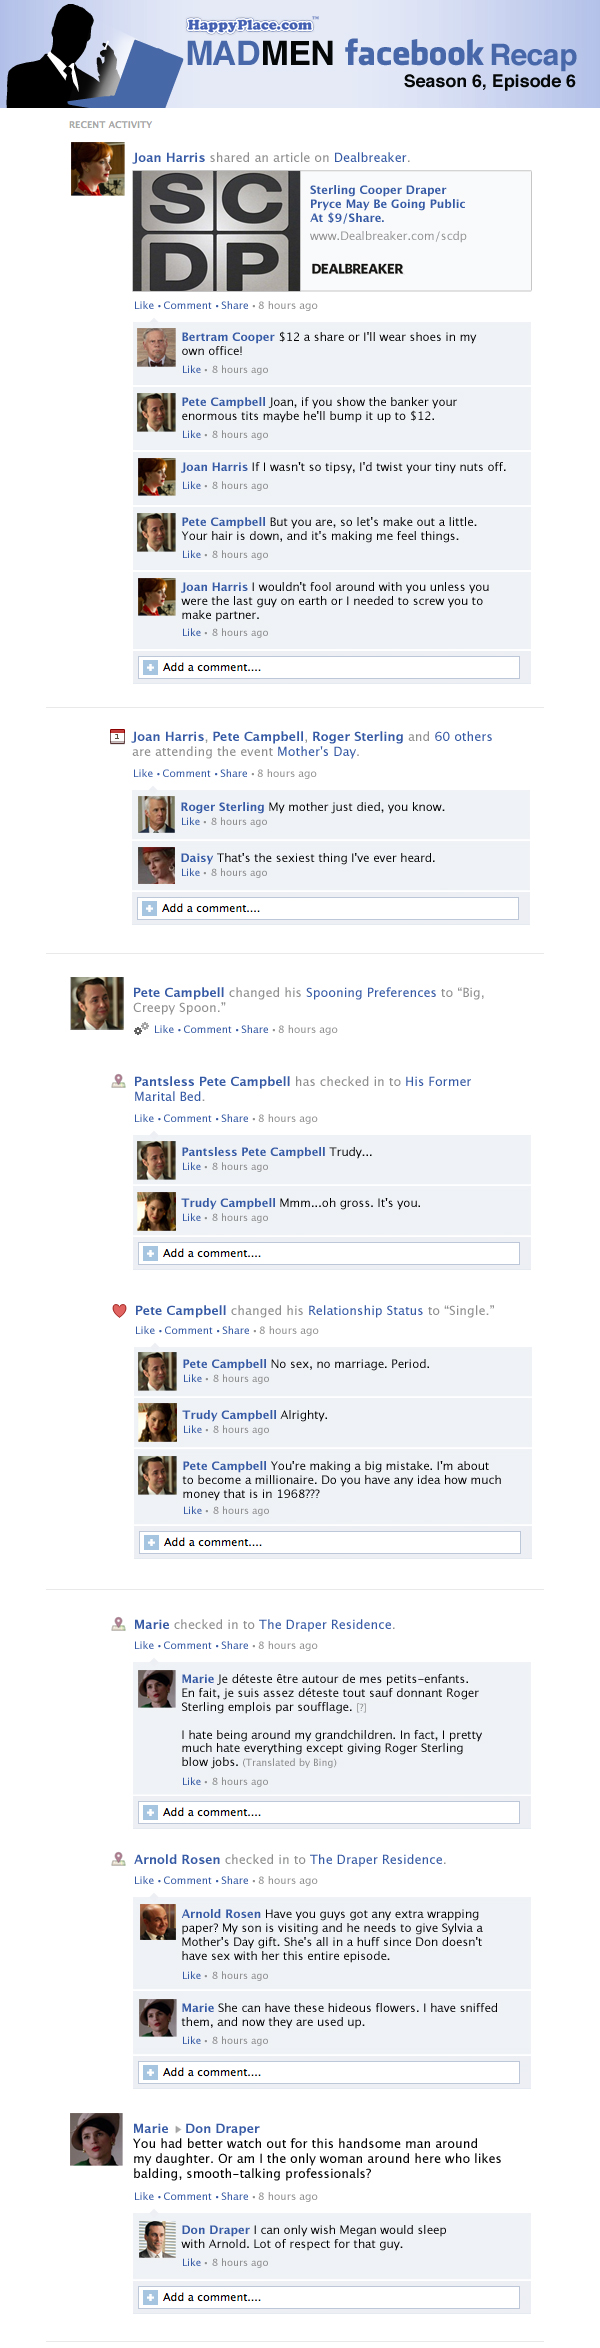 If Mad Men took place entirely on Facebook: Season 6, Episode 6.